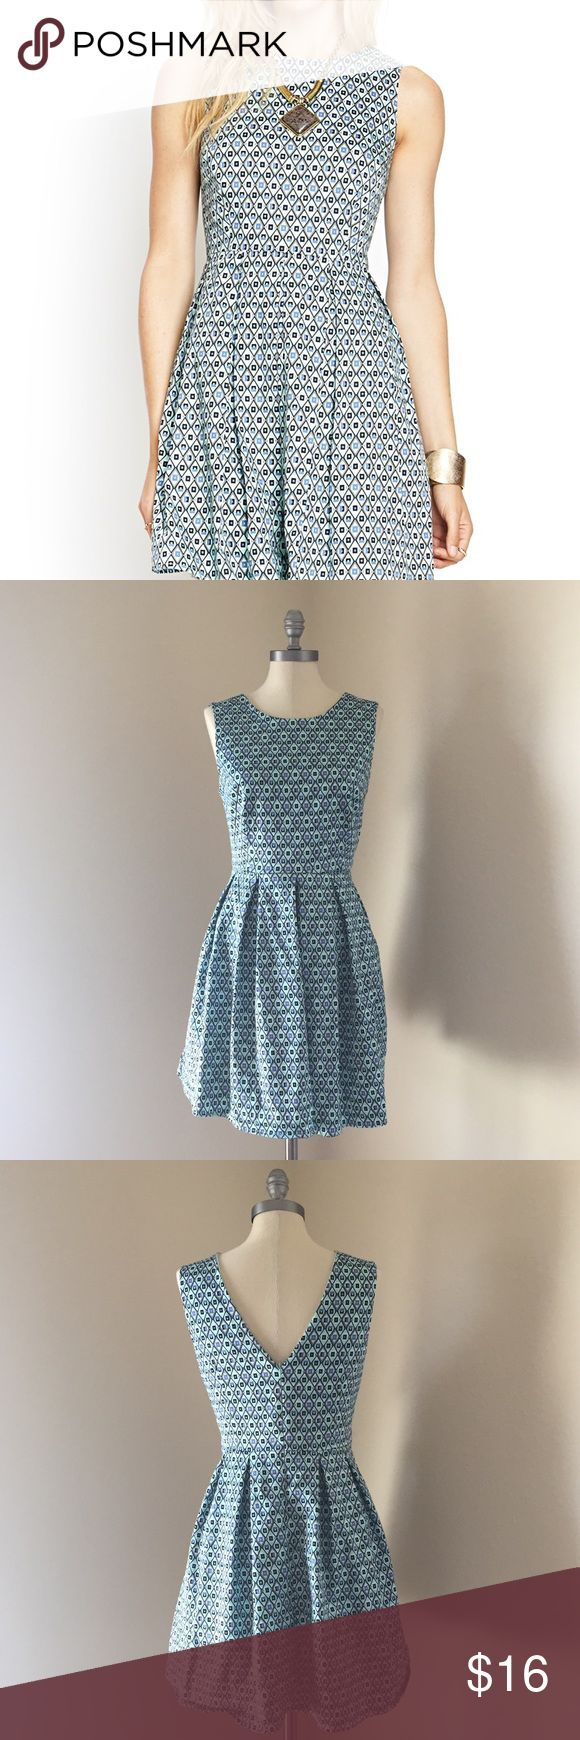 best ideas about dresses for easter on pinterest easter